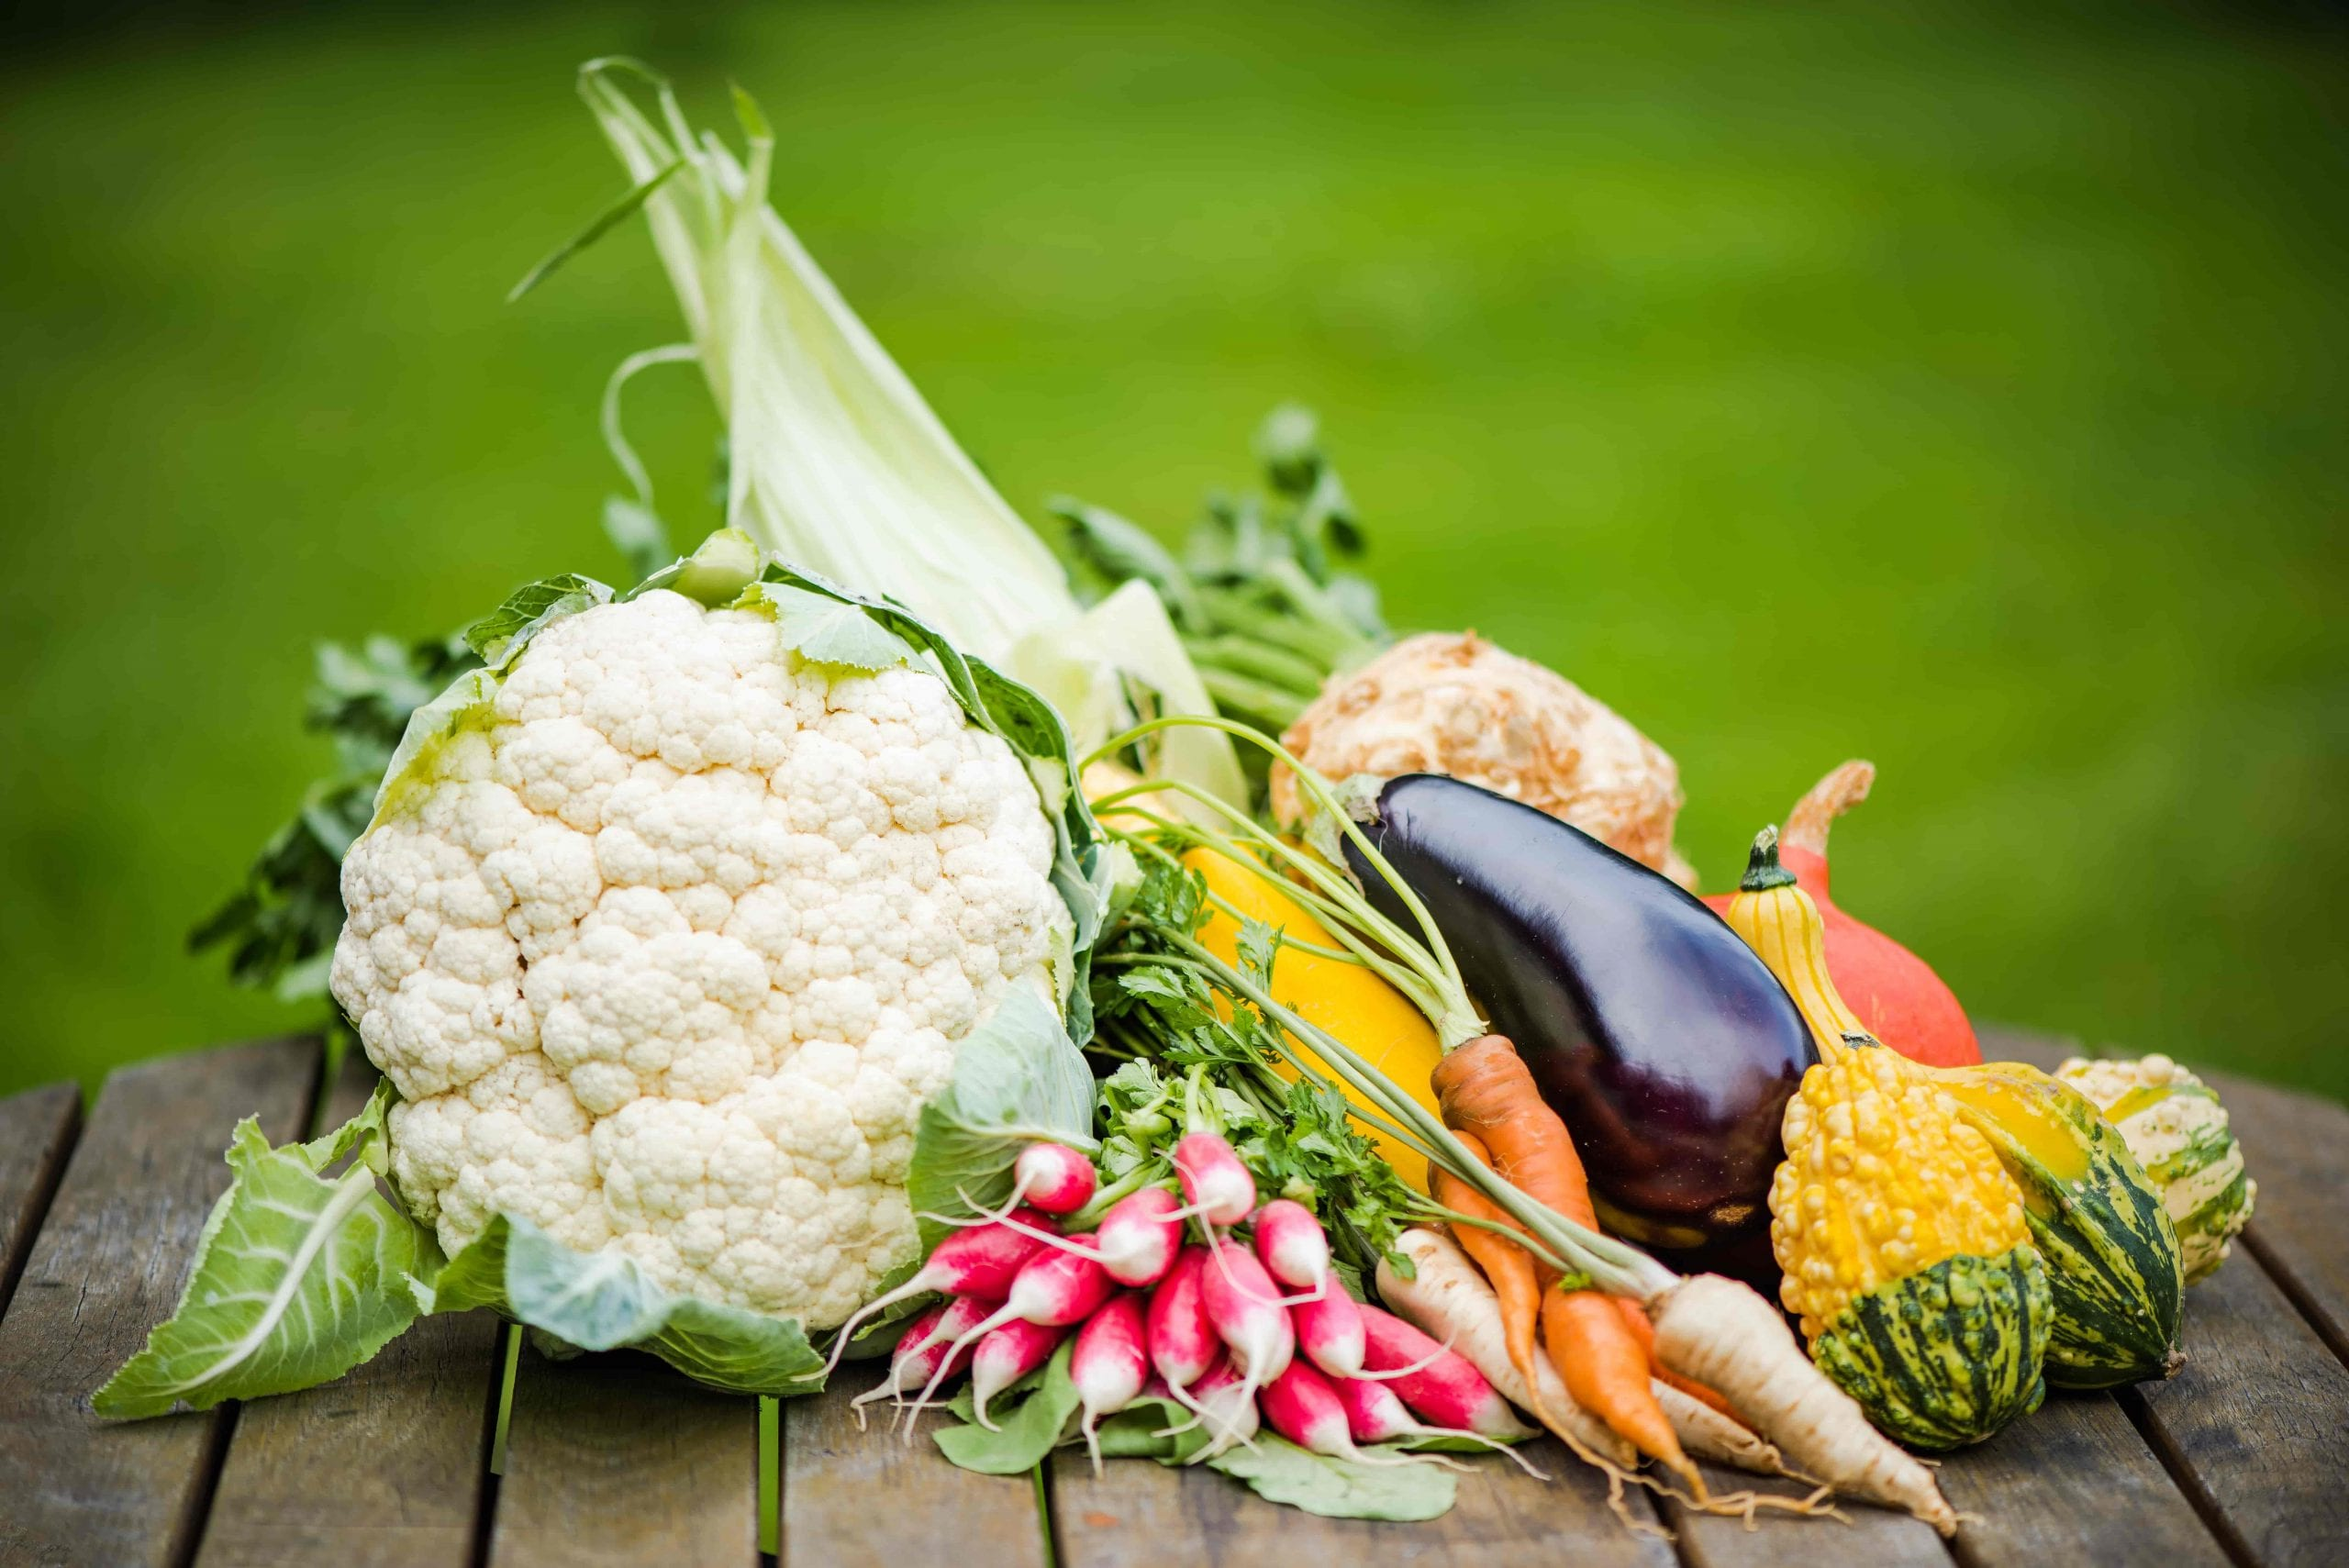 freshly picked vegetables from the fall garden cauliflower radish eggplant squash